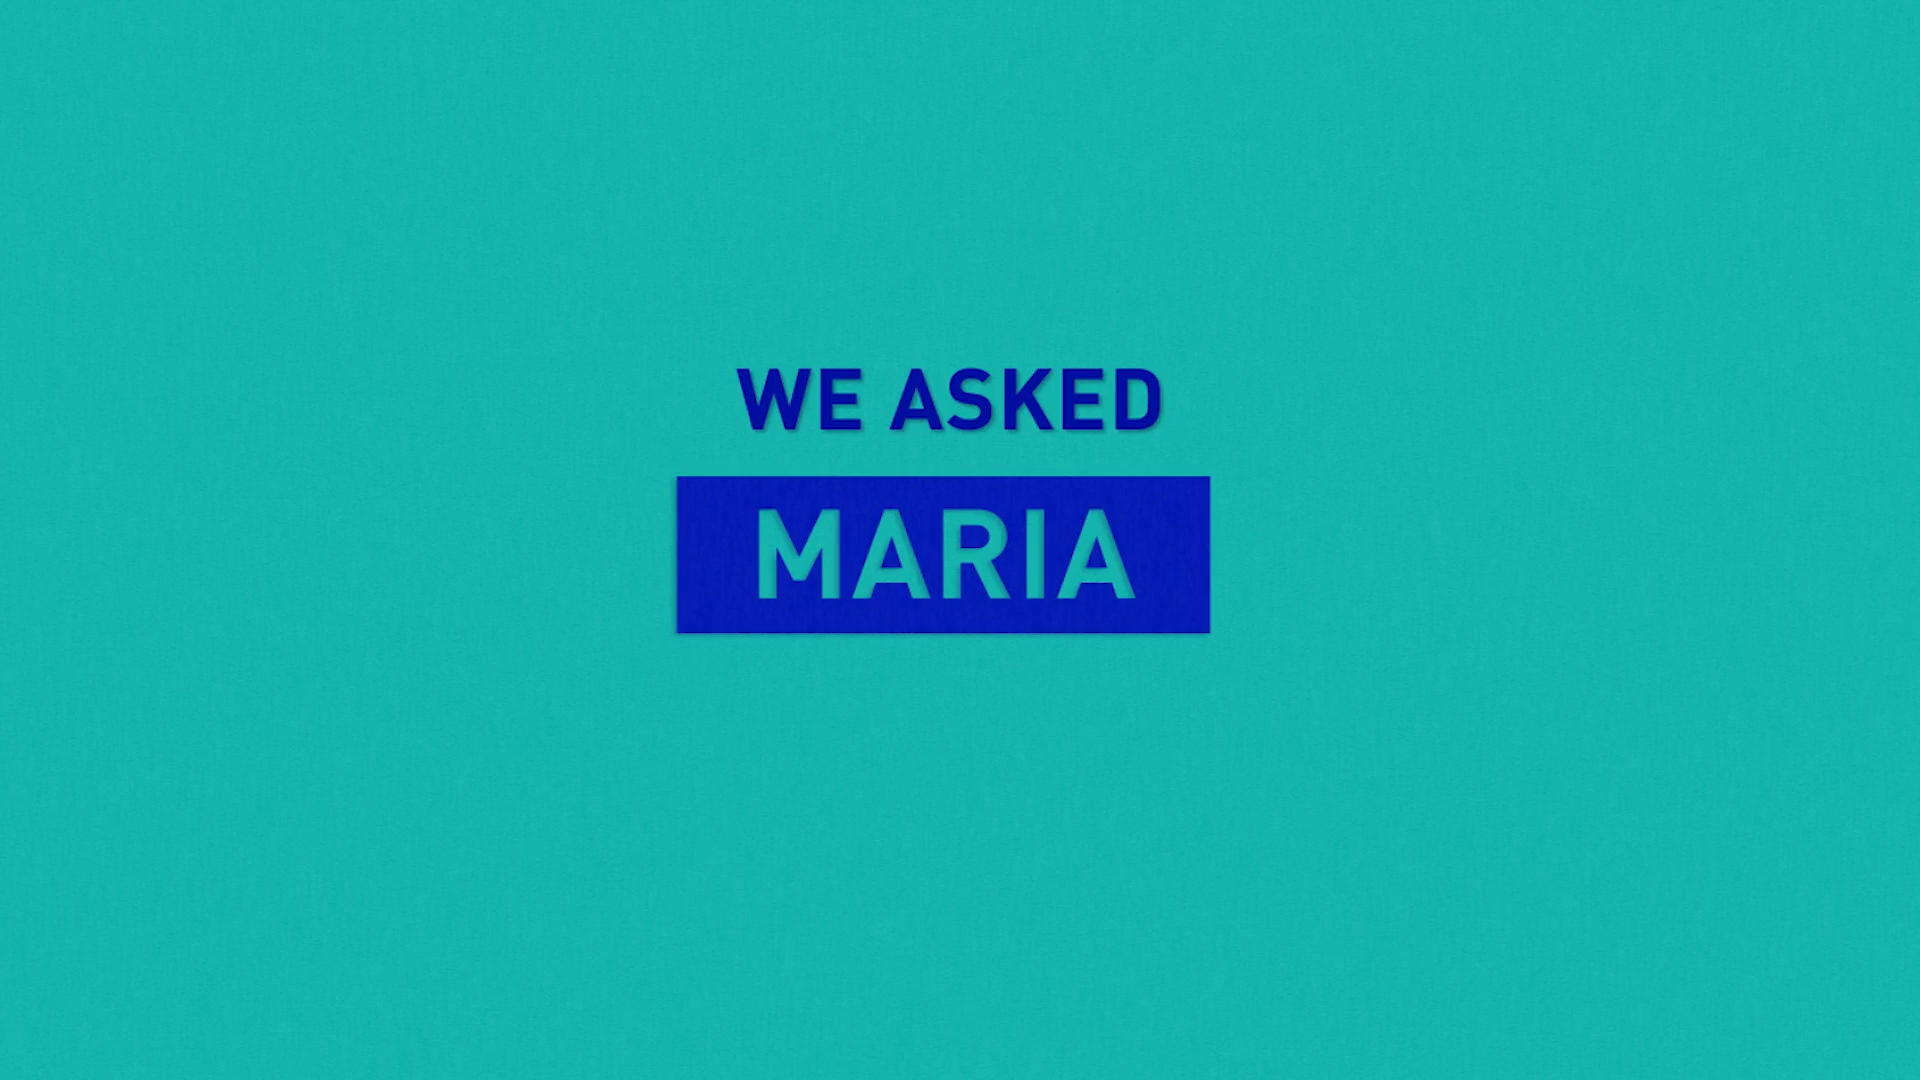 we asked maria splash image